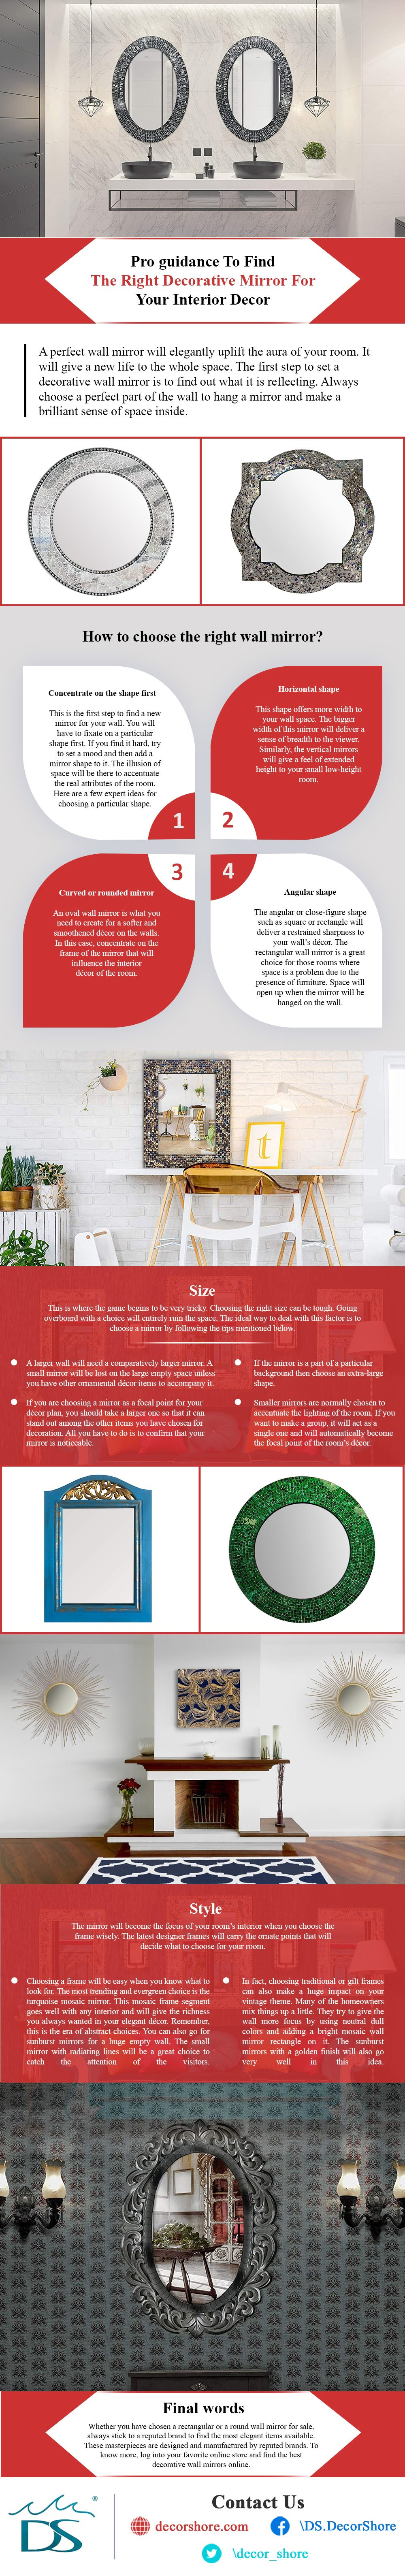 pro-guidance-to-find-the-right-decorative-mirror-for-your-interior-decor-infographic